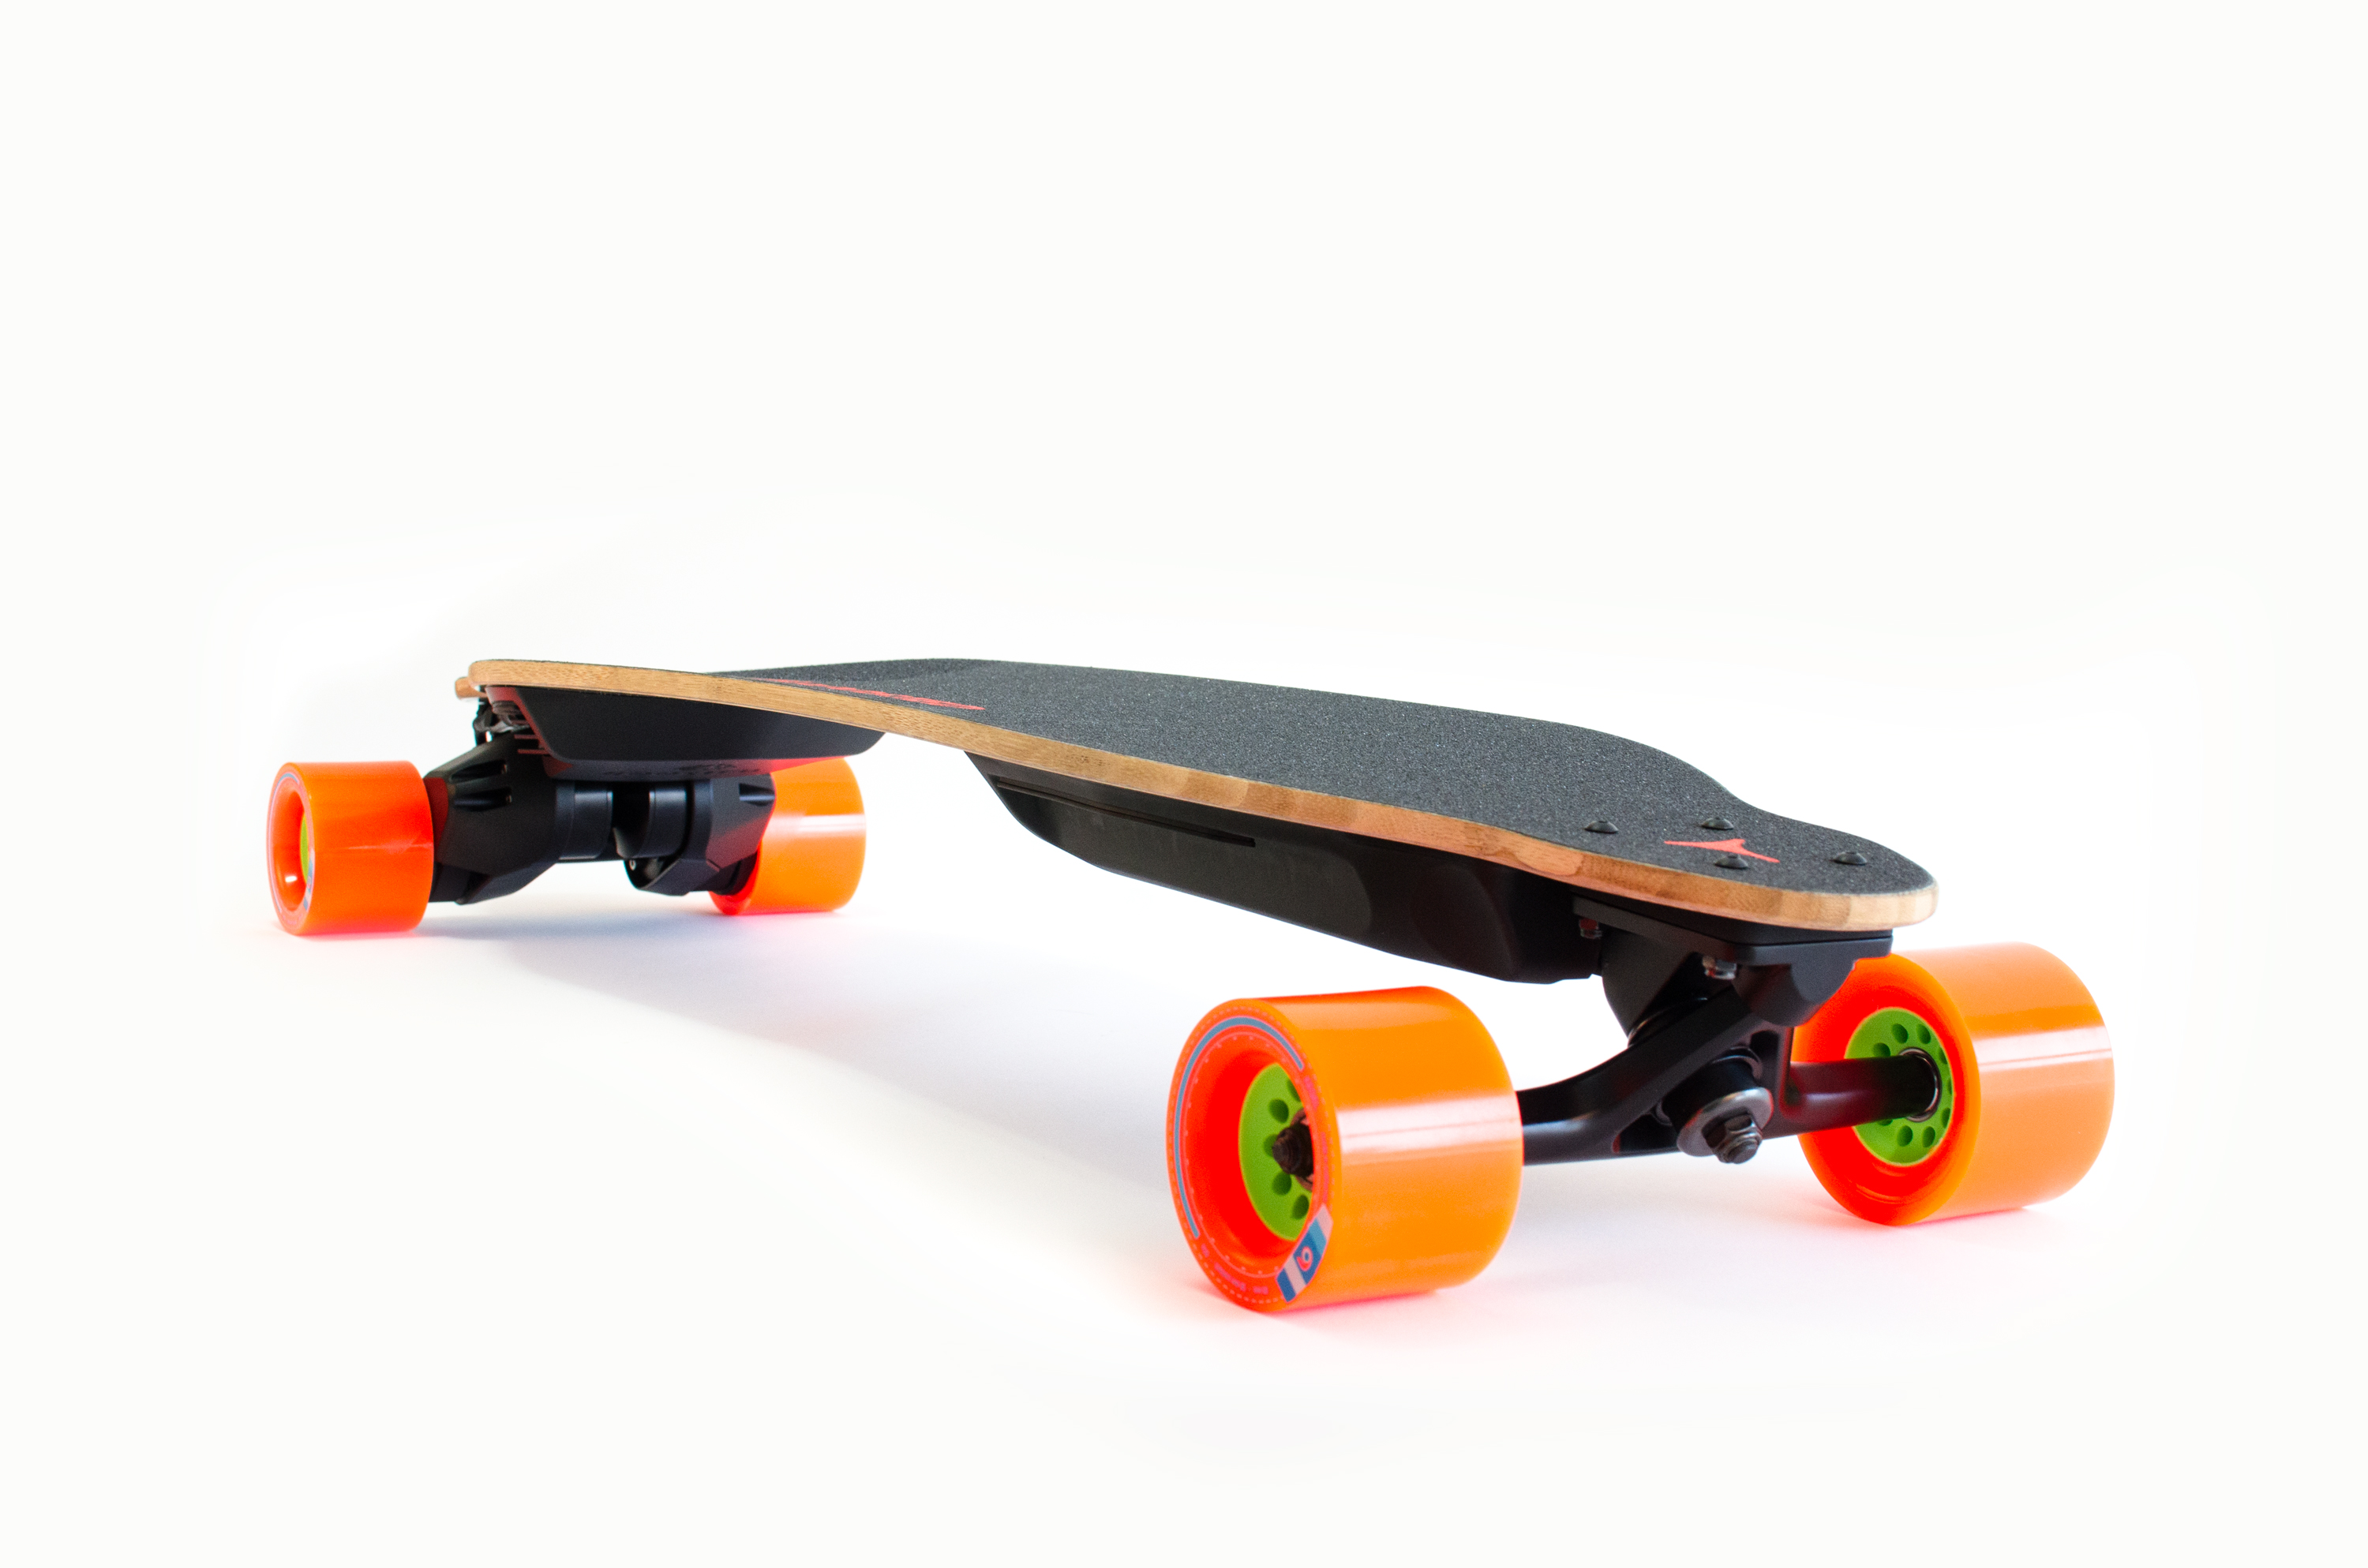 Side view of Boosted model